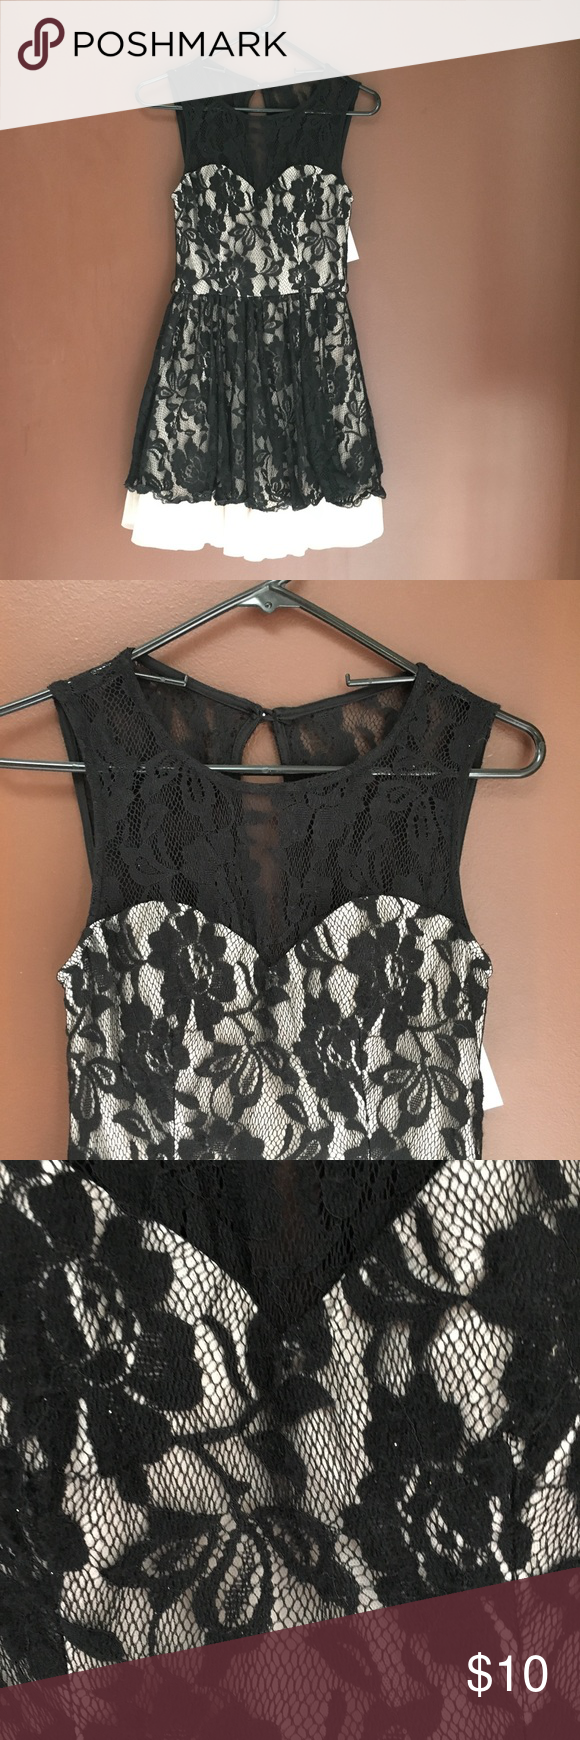 Black Lace Over Cream Fit Flare Dress Fit Flare Dress Flare Dress Black Lace [ 1740 x 580 Pixel ]